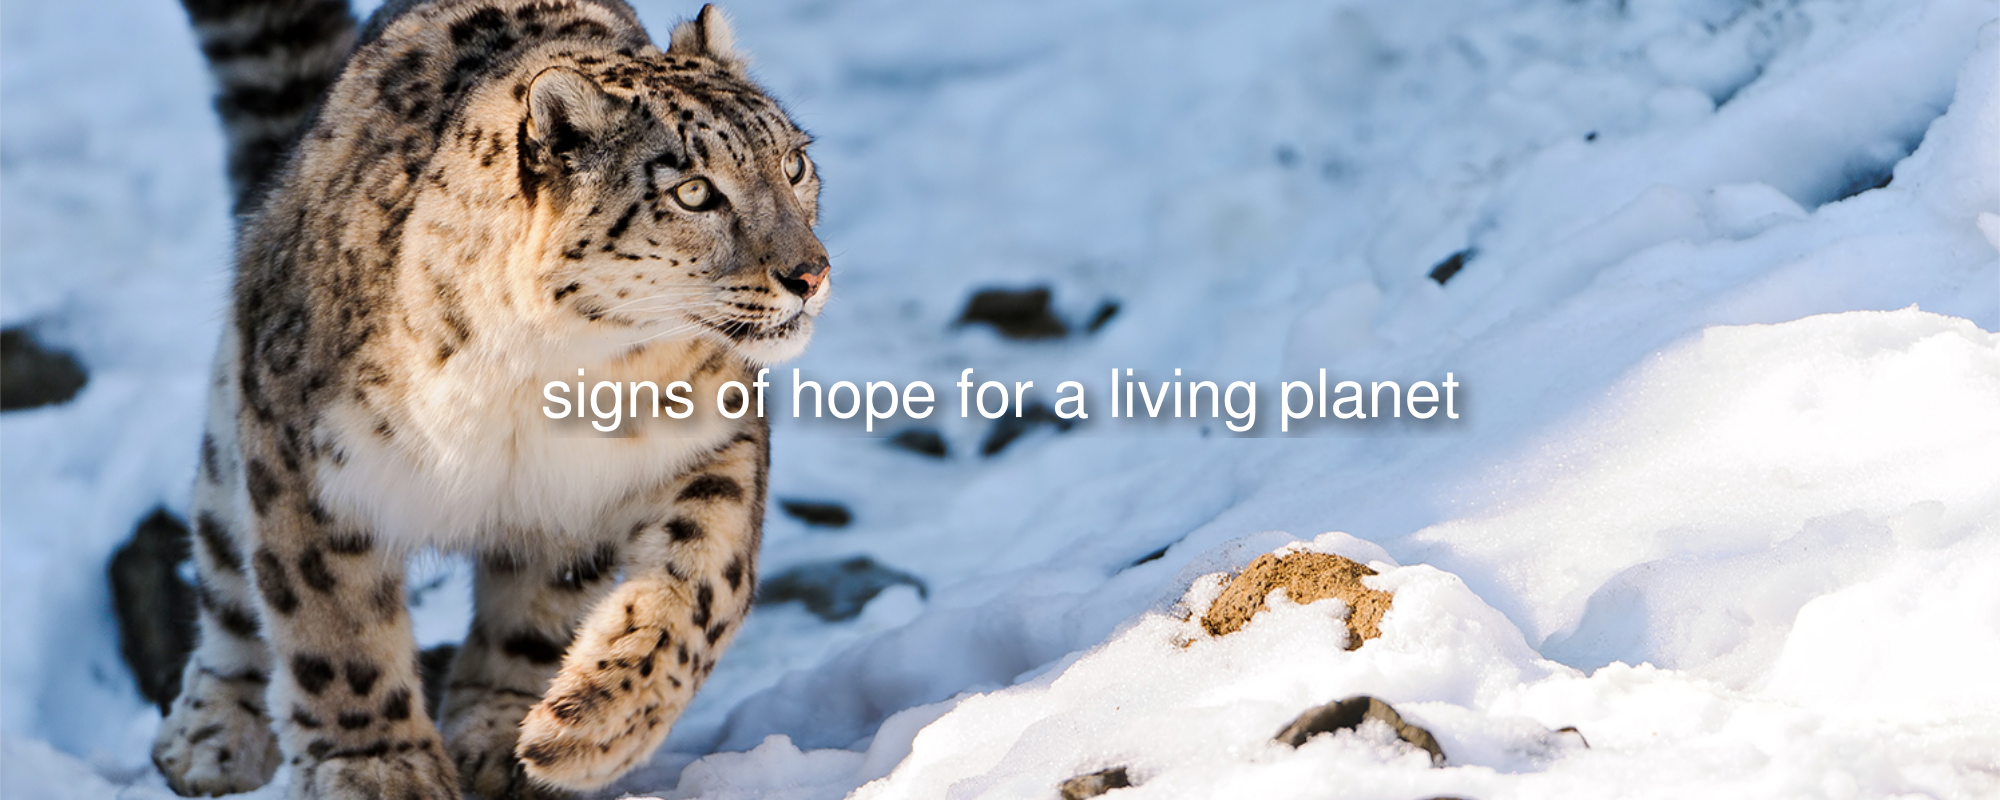 Snow leopard in Southern China (Image credit: Tambako/Flickr